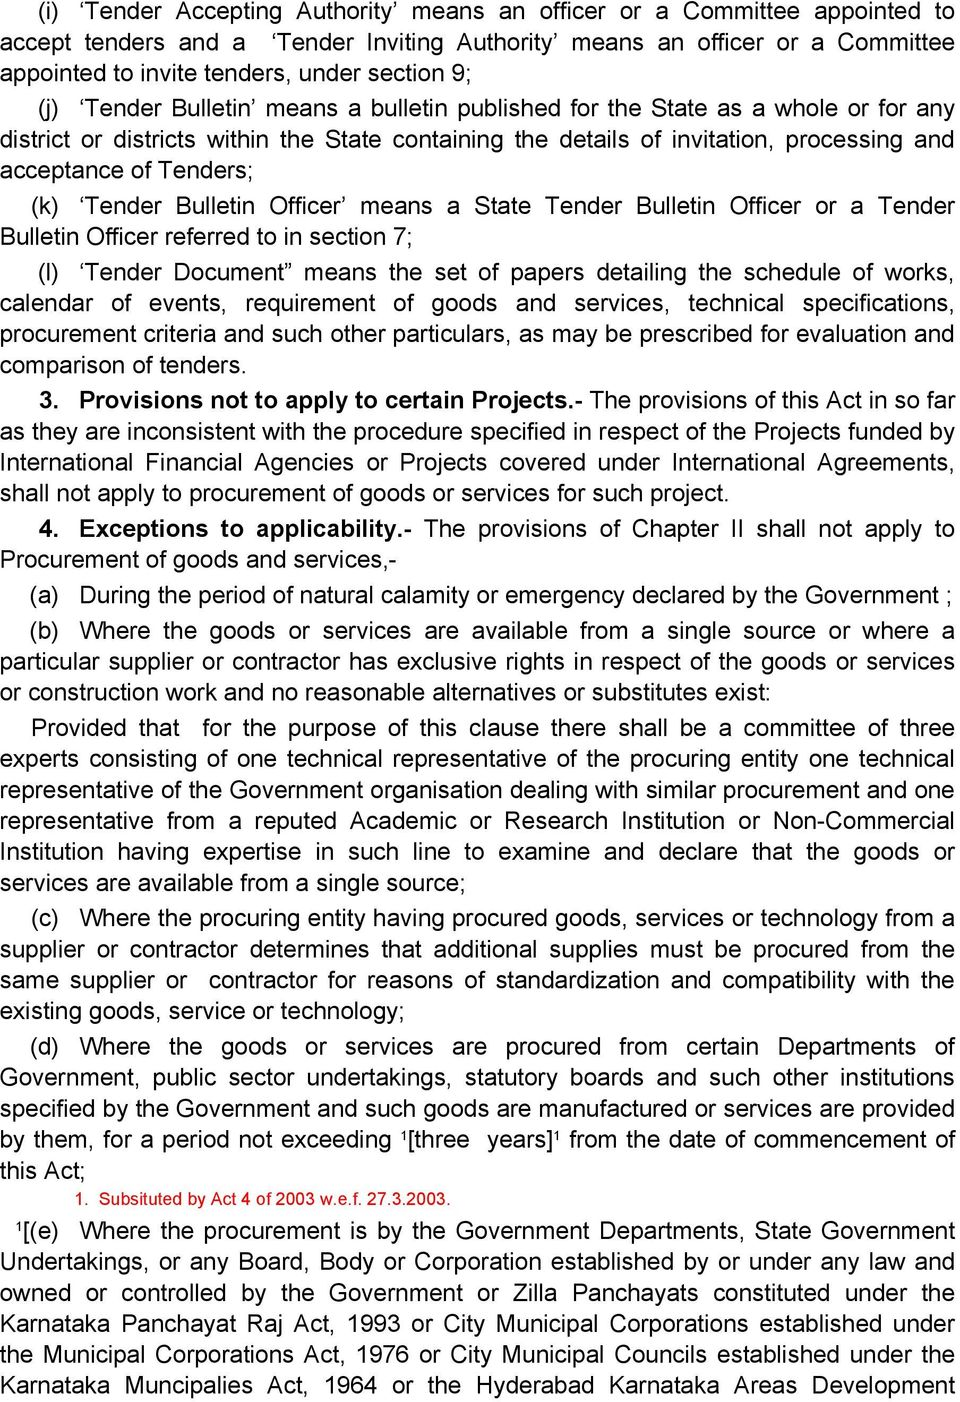 Tenders; (k) Tender Bulletin Officer means a State Tender Bulletin Officer or a Tender Bulletin Officer referred to in section 7; (l) Tender Document means the set of papers detailing the schedule of